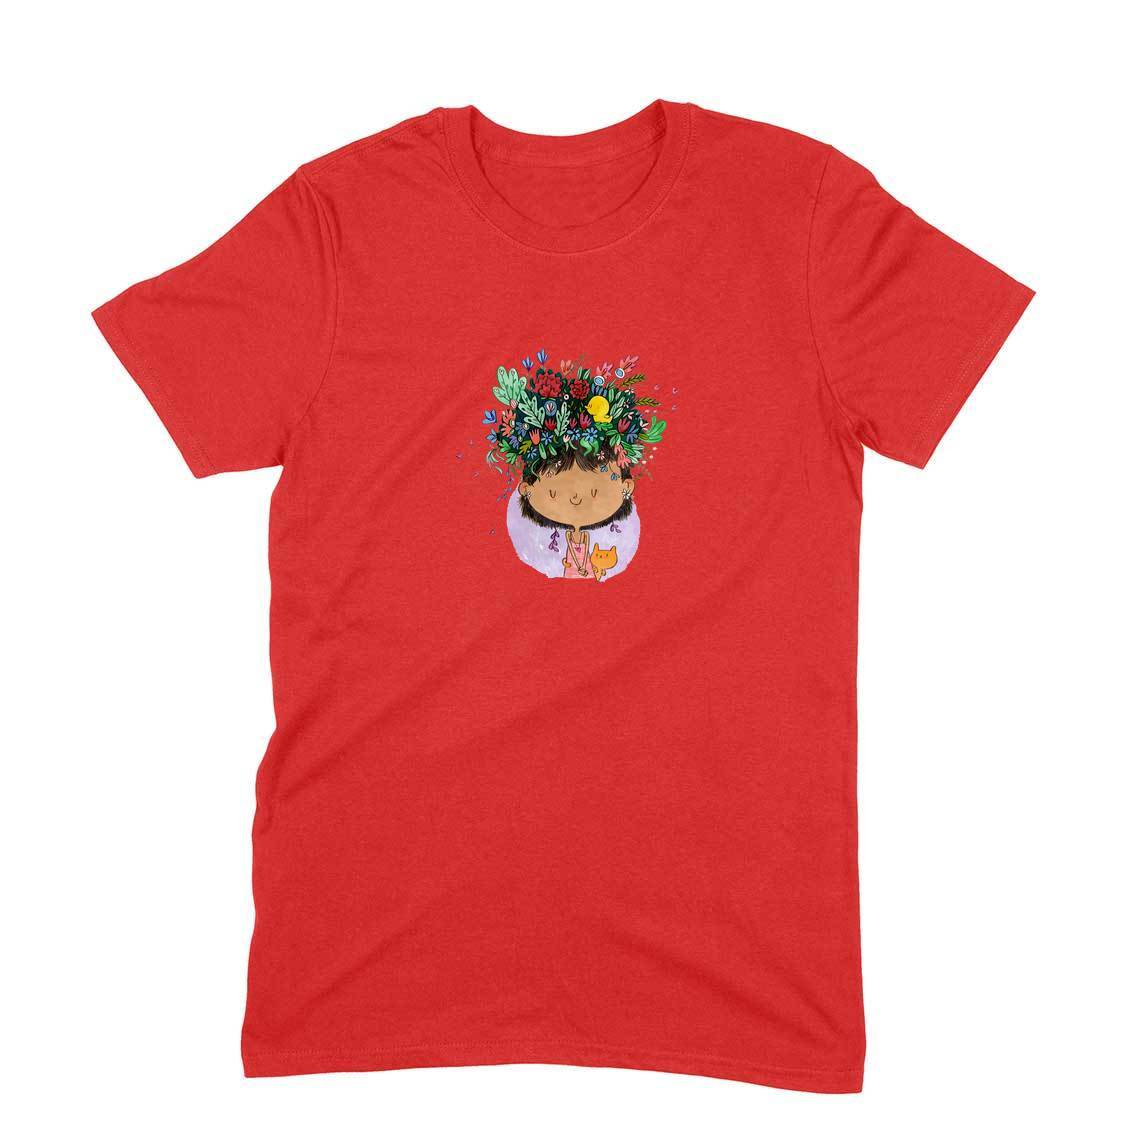 Flower on the Head T-shirt